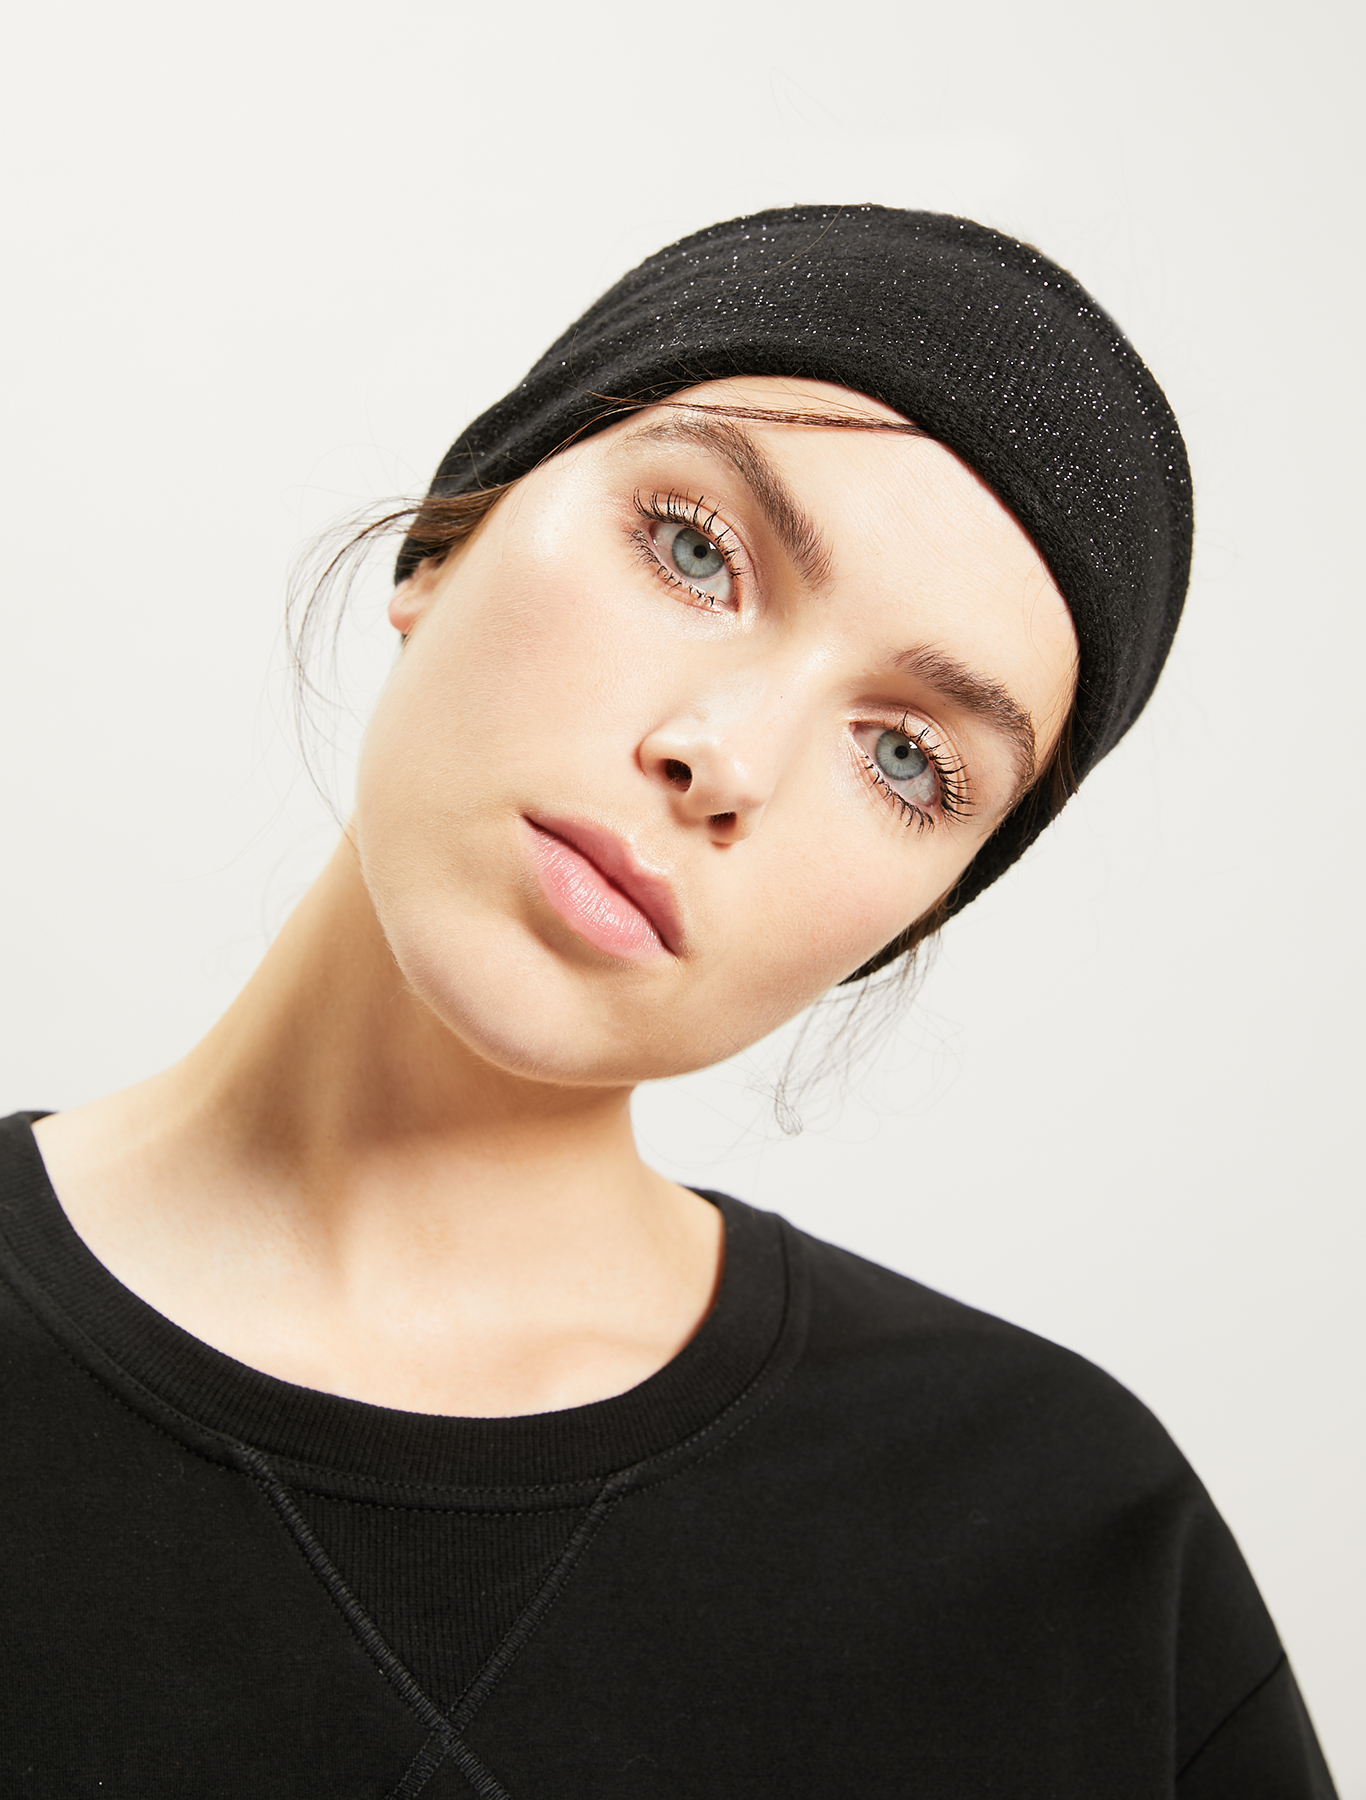 Band for lamé hats -  - pennyblack